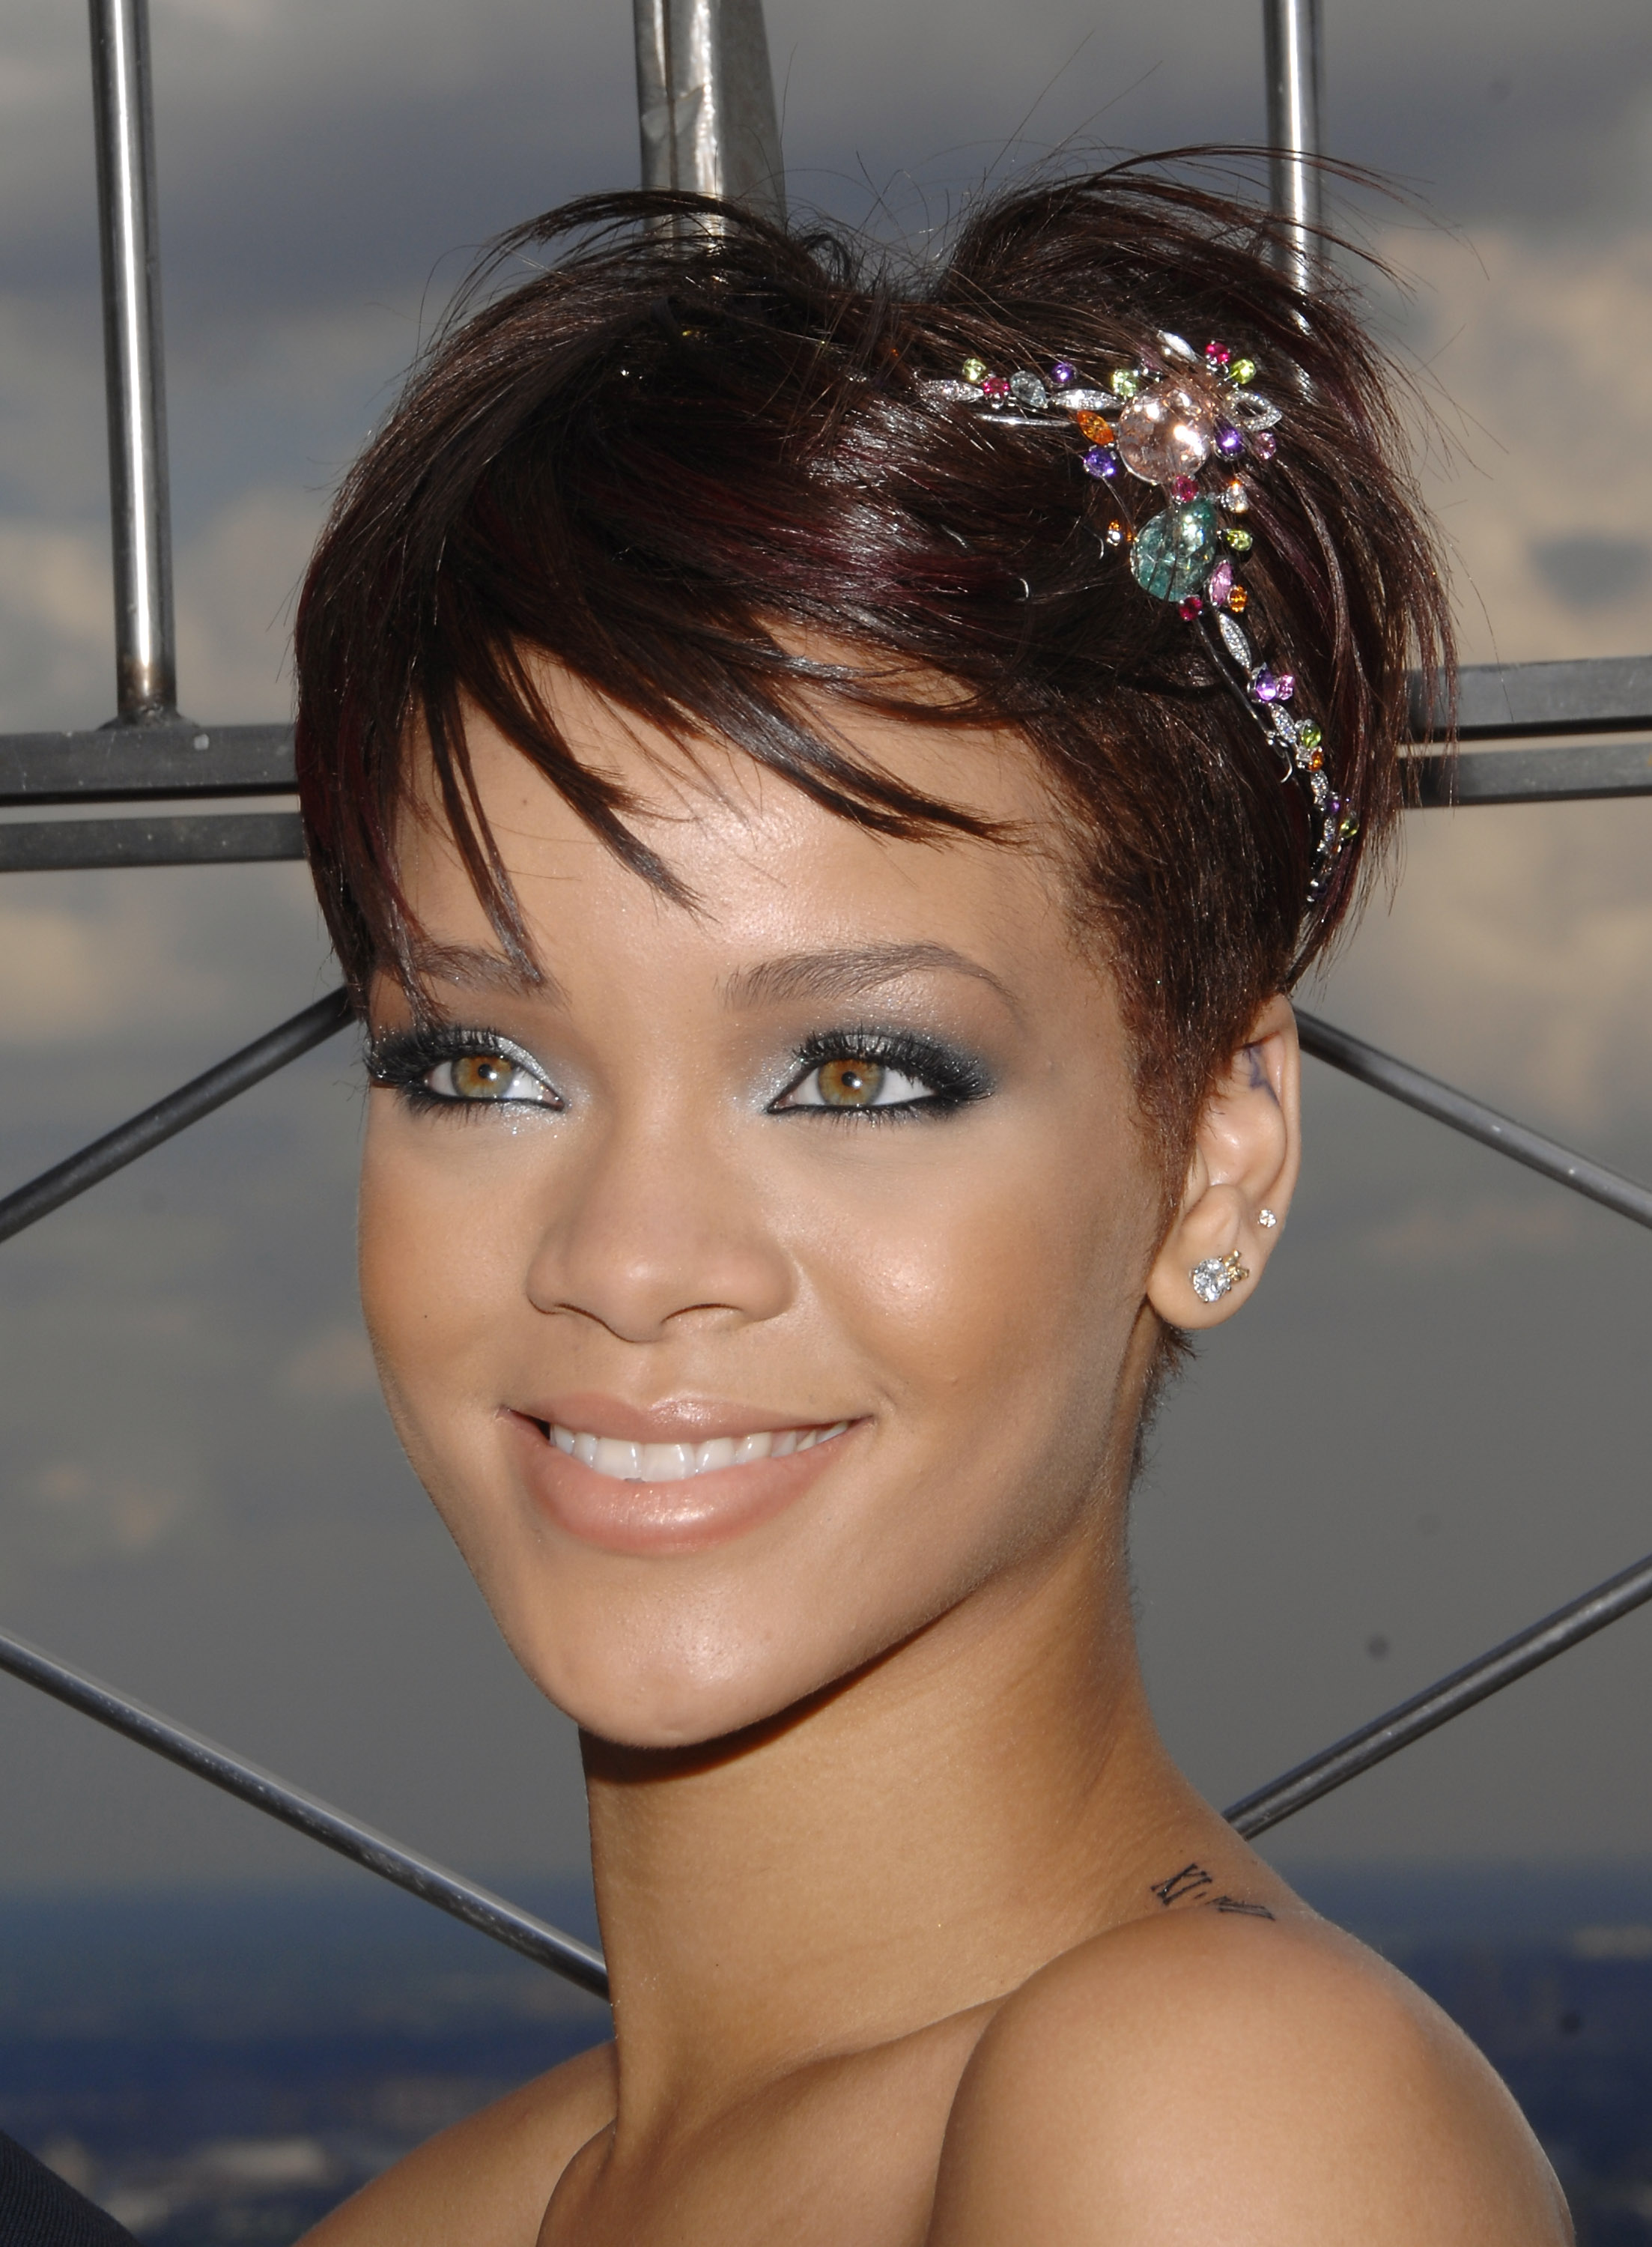 Rihanna Headpiece